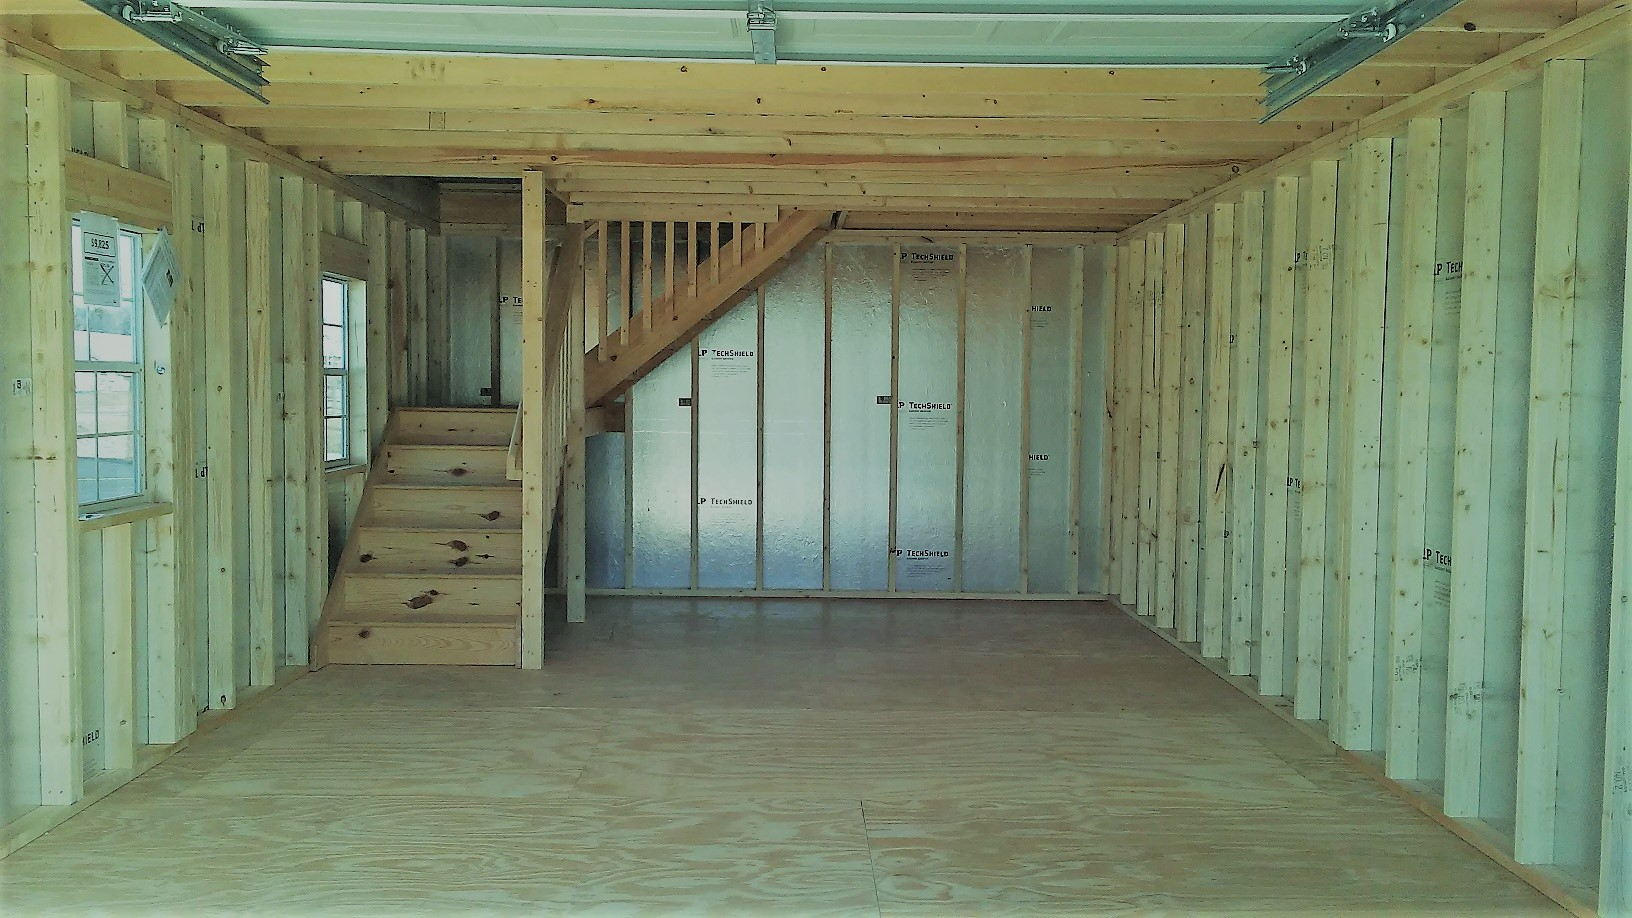 2 Story Garage Size 14x24 For 14 394 90 As Shown Below